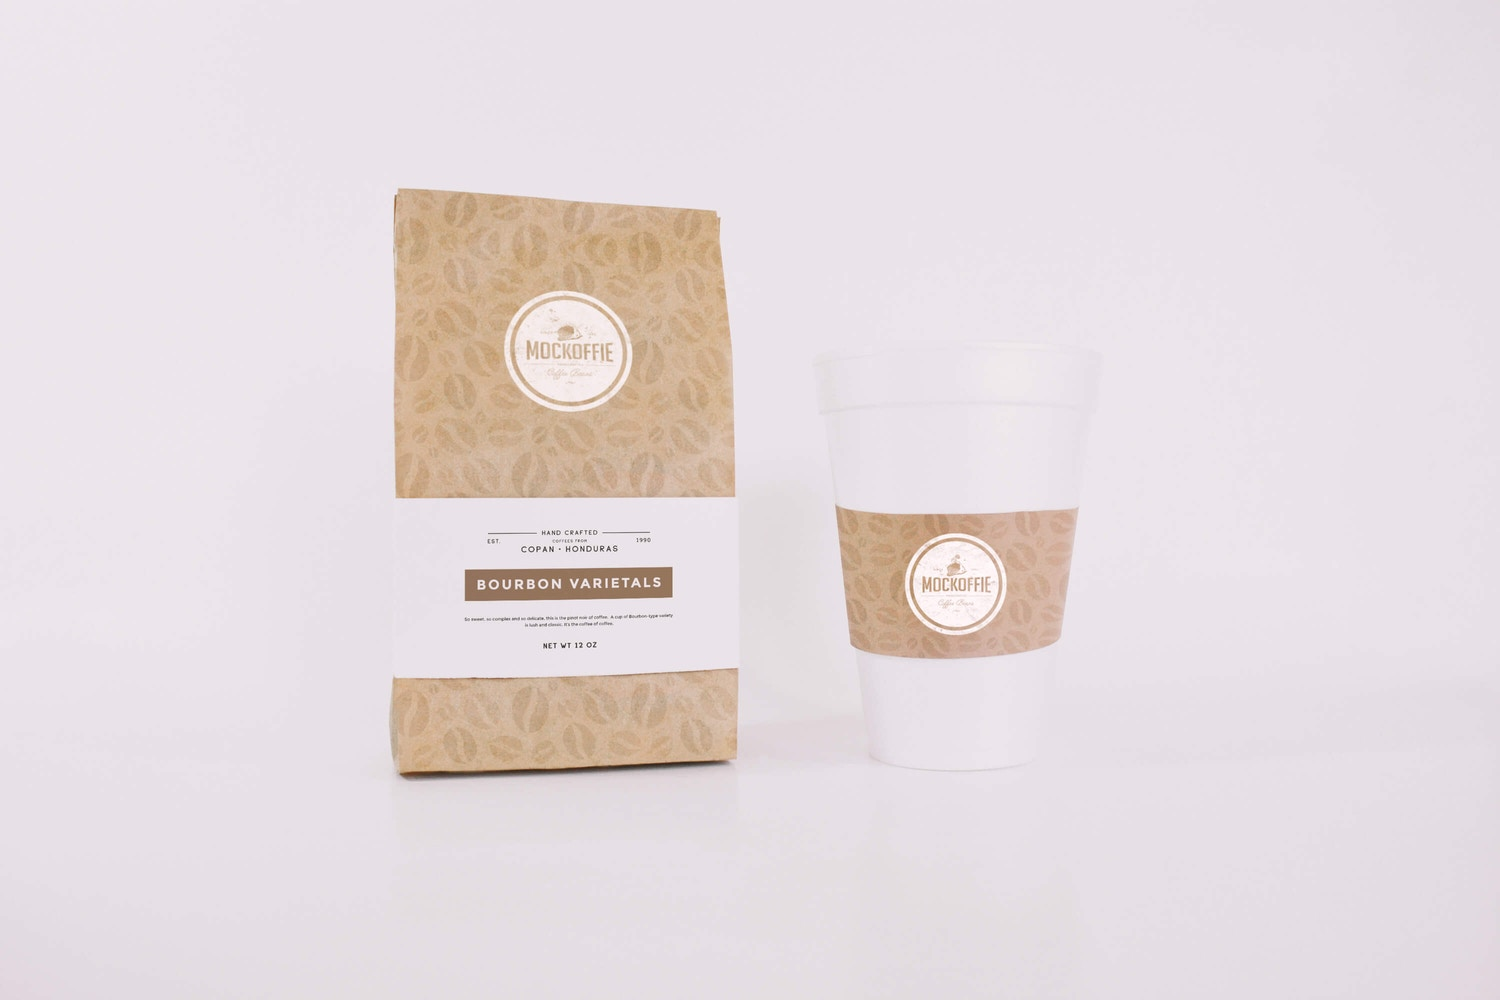 Coffee Bag and Cup Mockup por Eduardo Mejia en Original Mockups